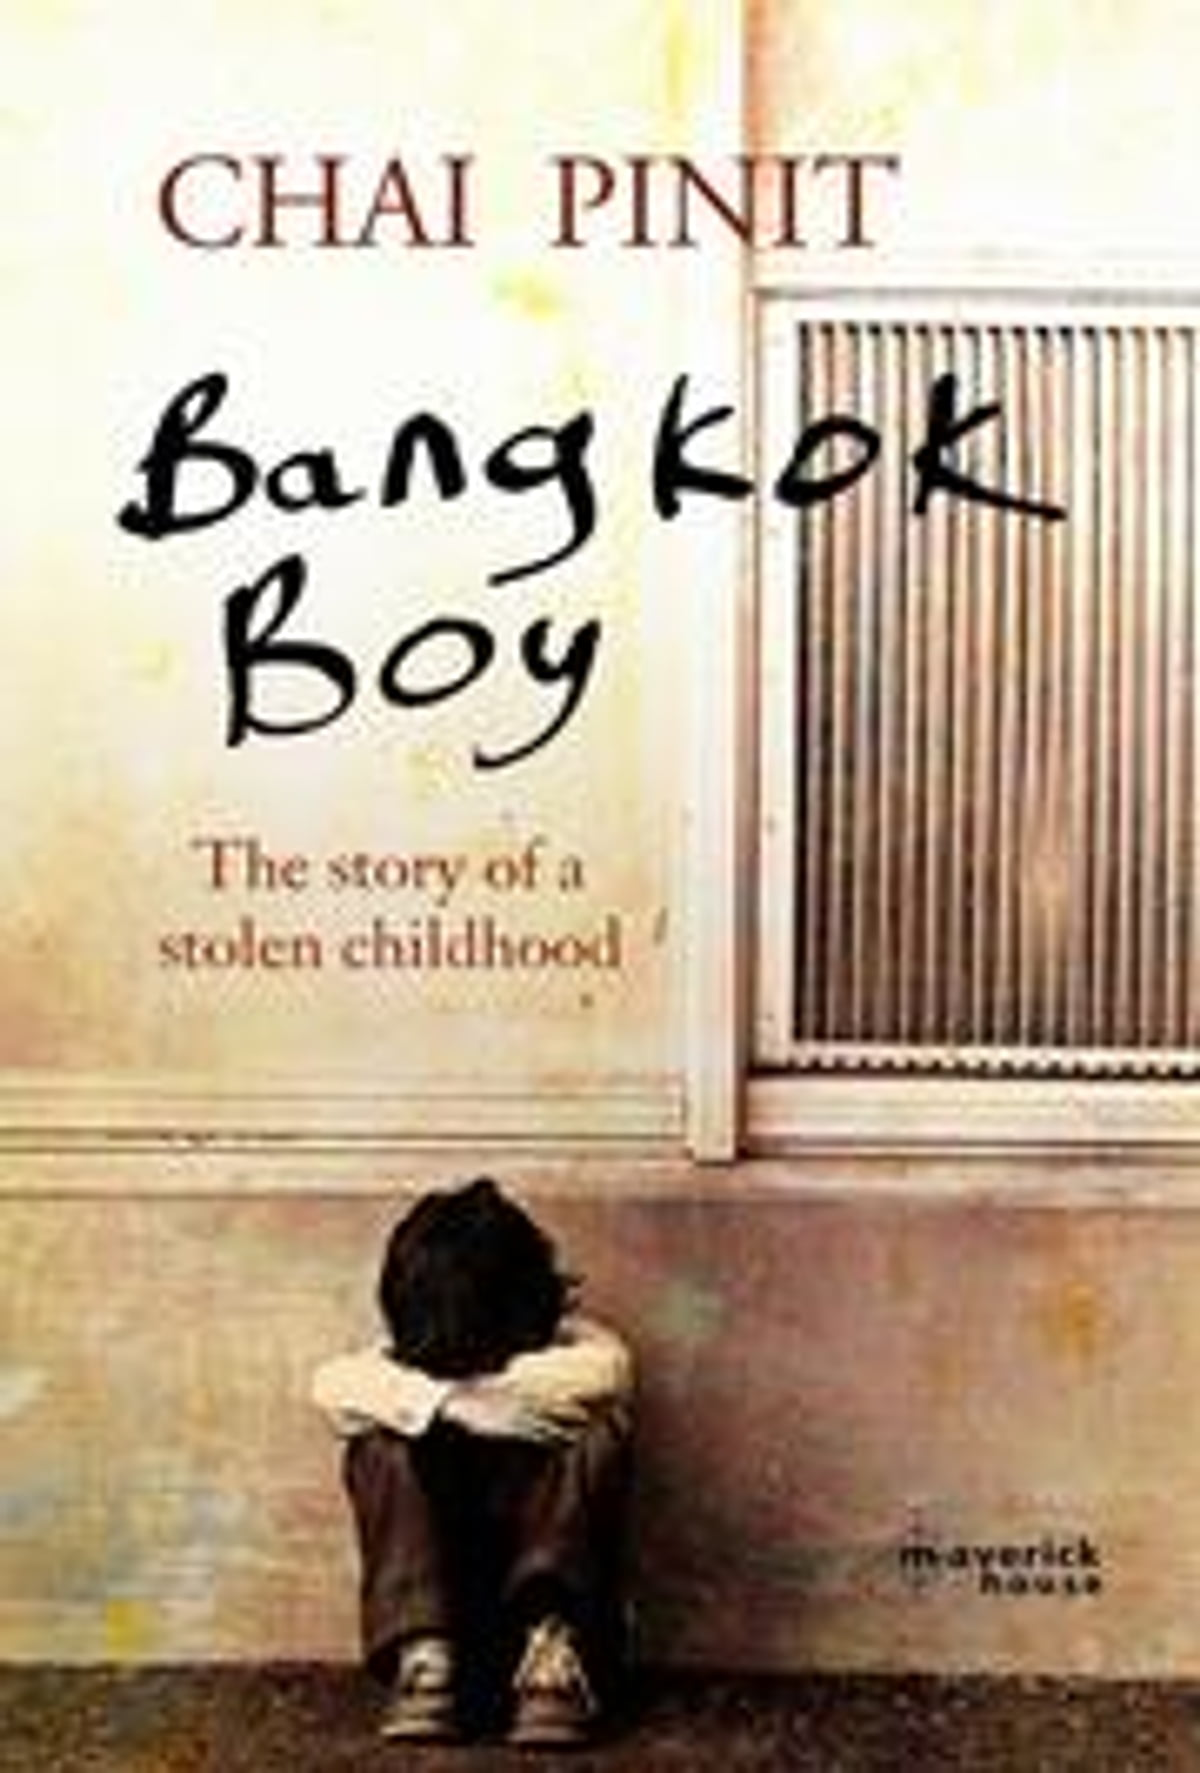 Bangkok Boy eBook by Chai Pinit - 9781905379859 | Rakuten Kobo